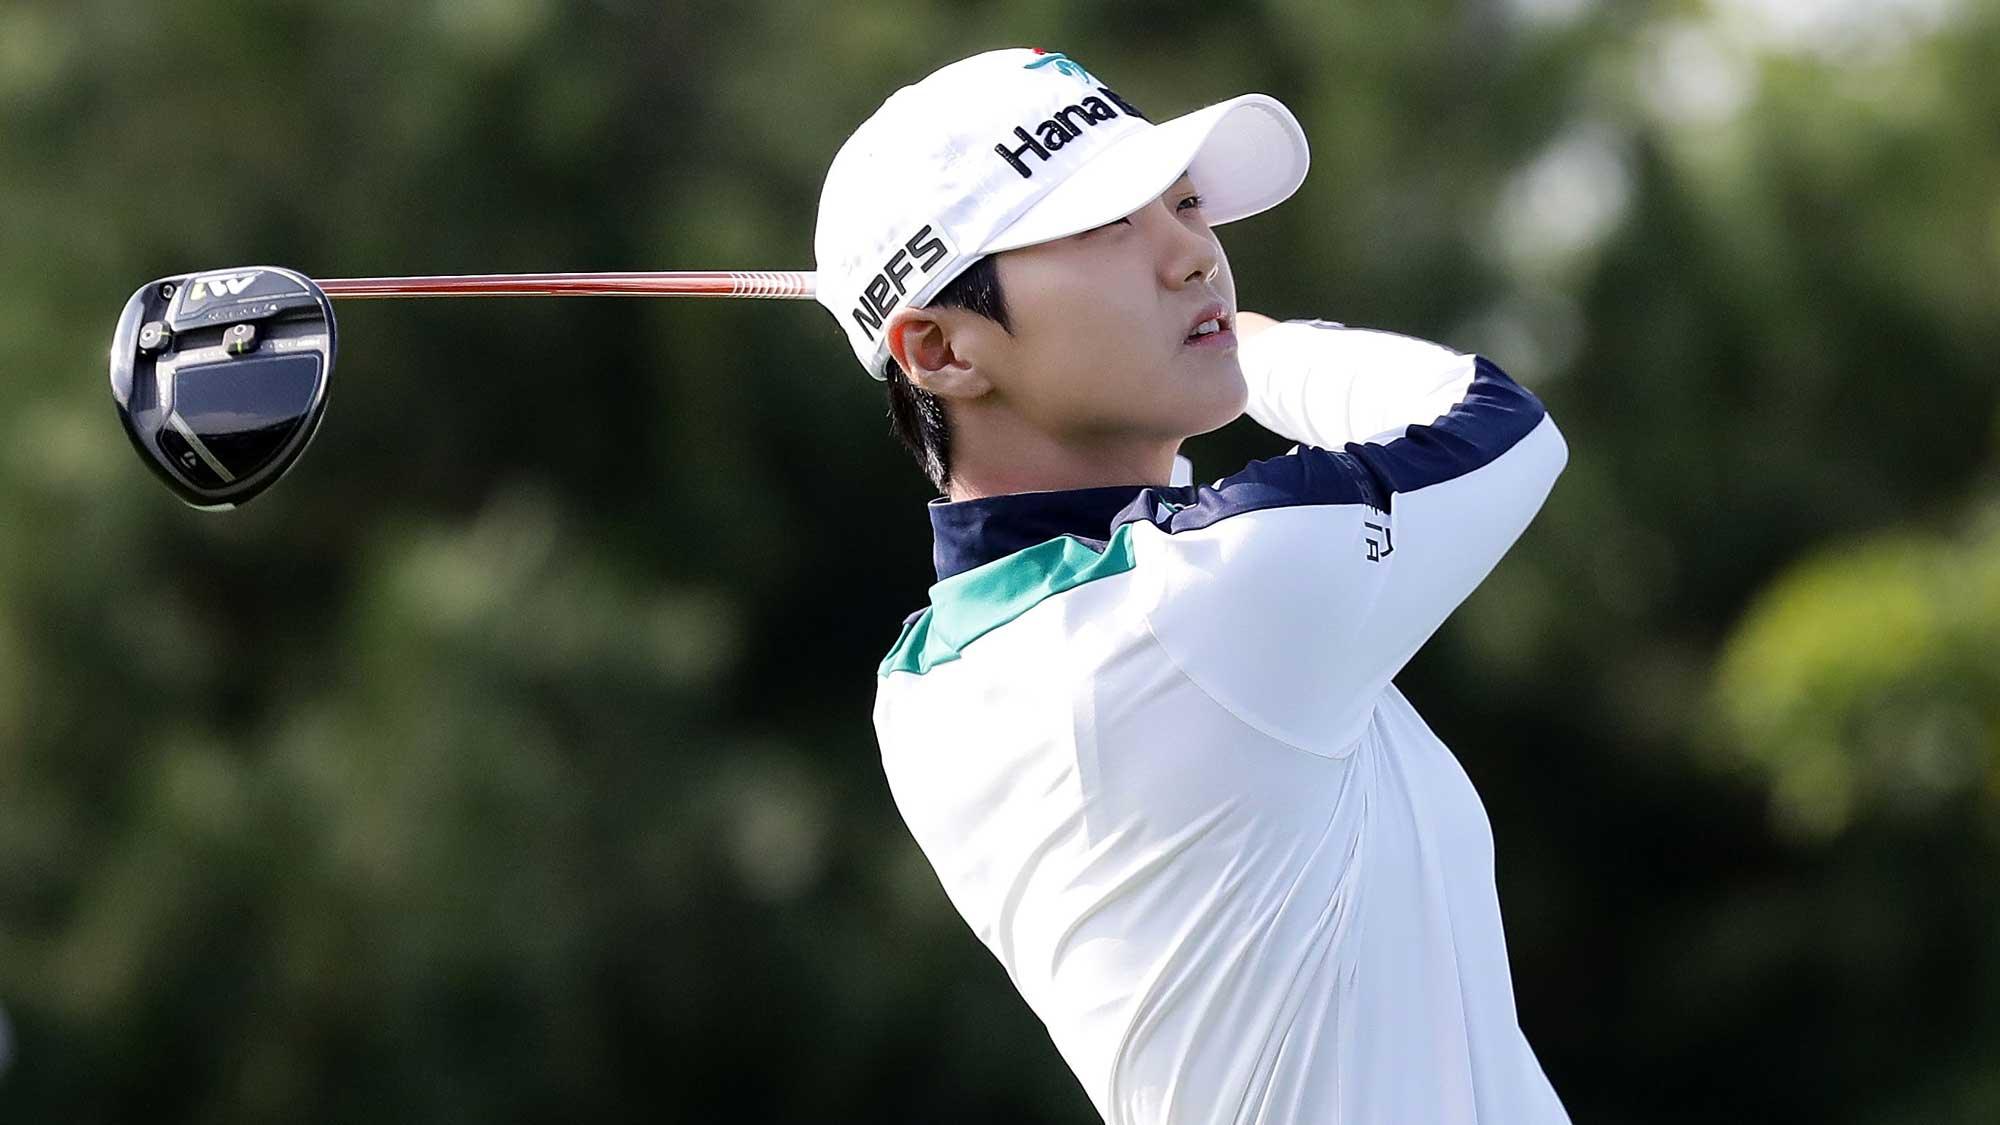 Park Simply Dominating At CME Tour Championship